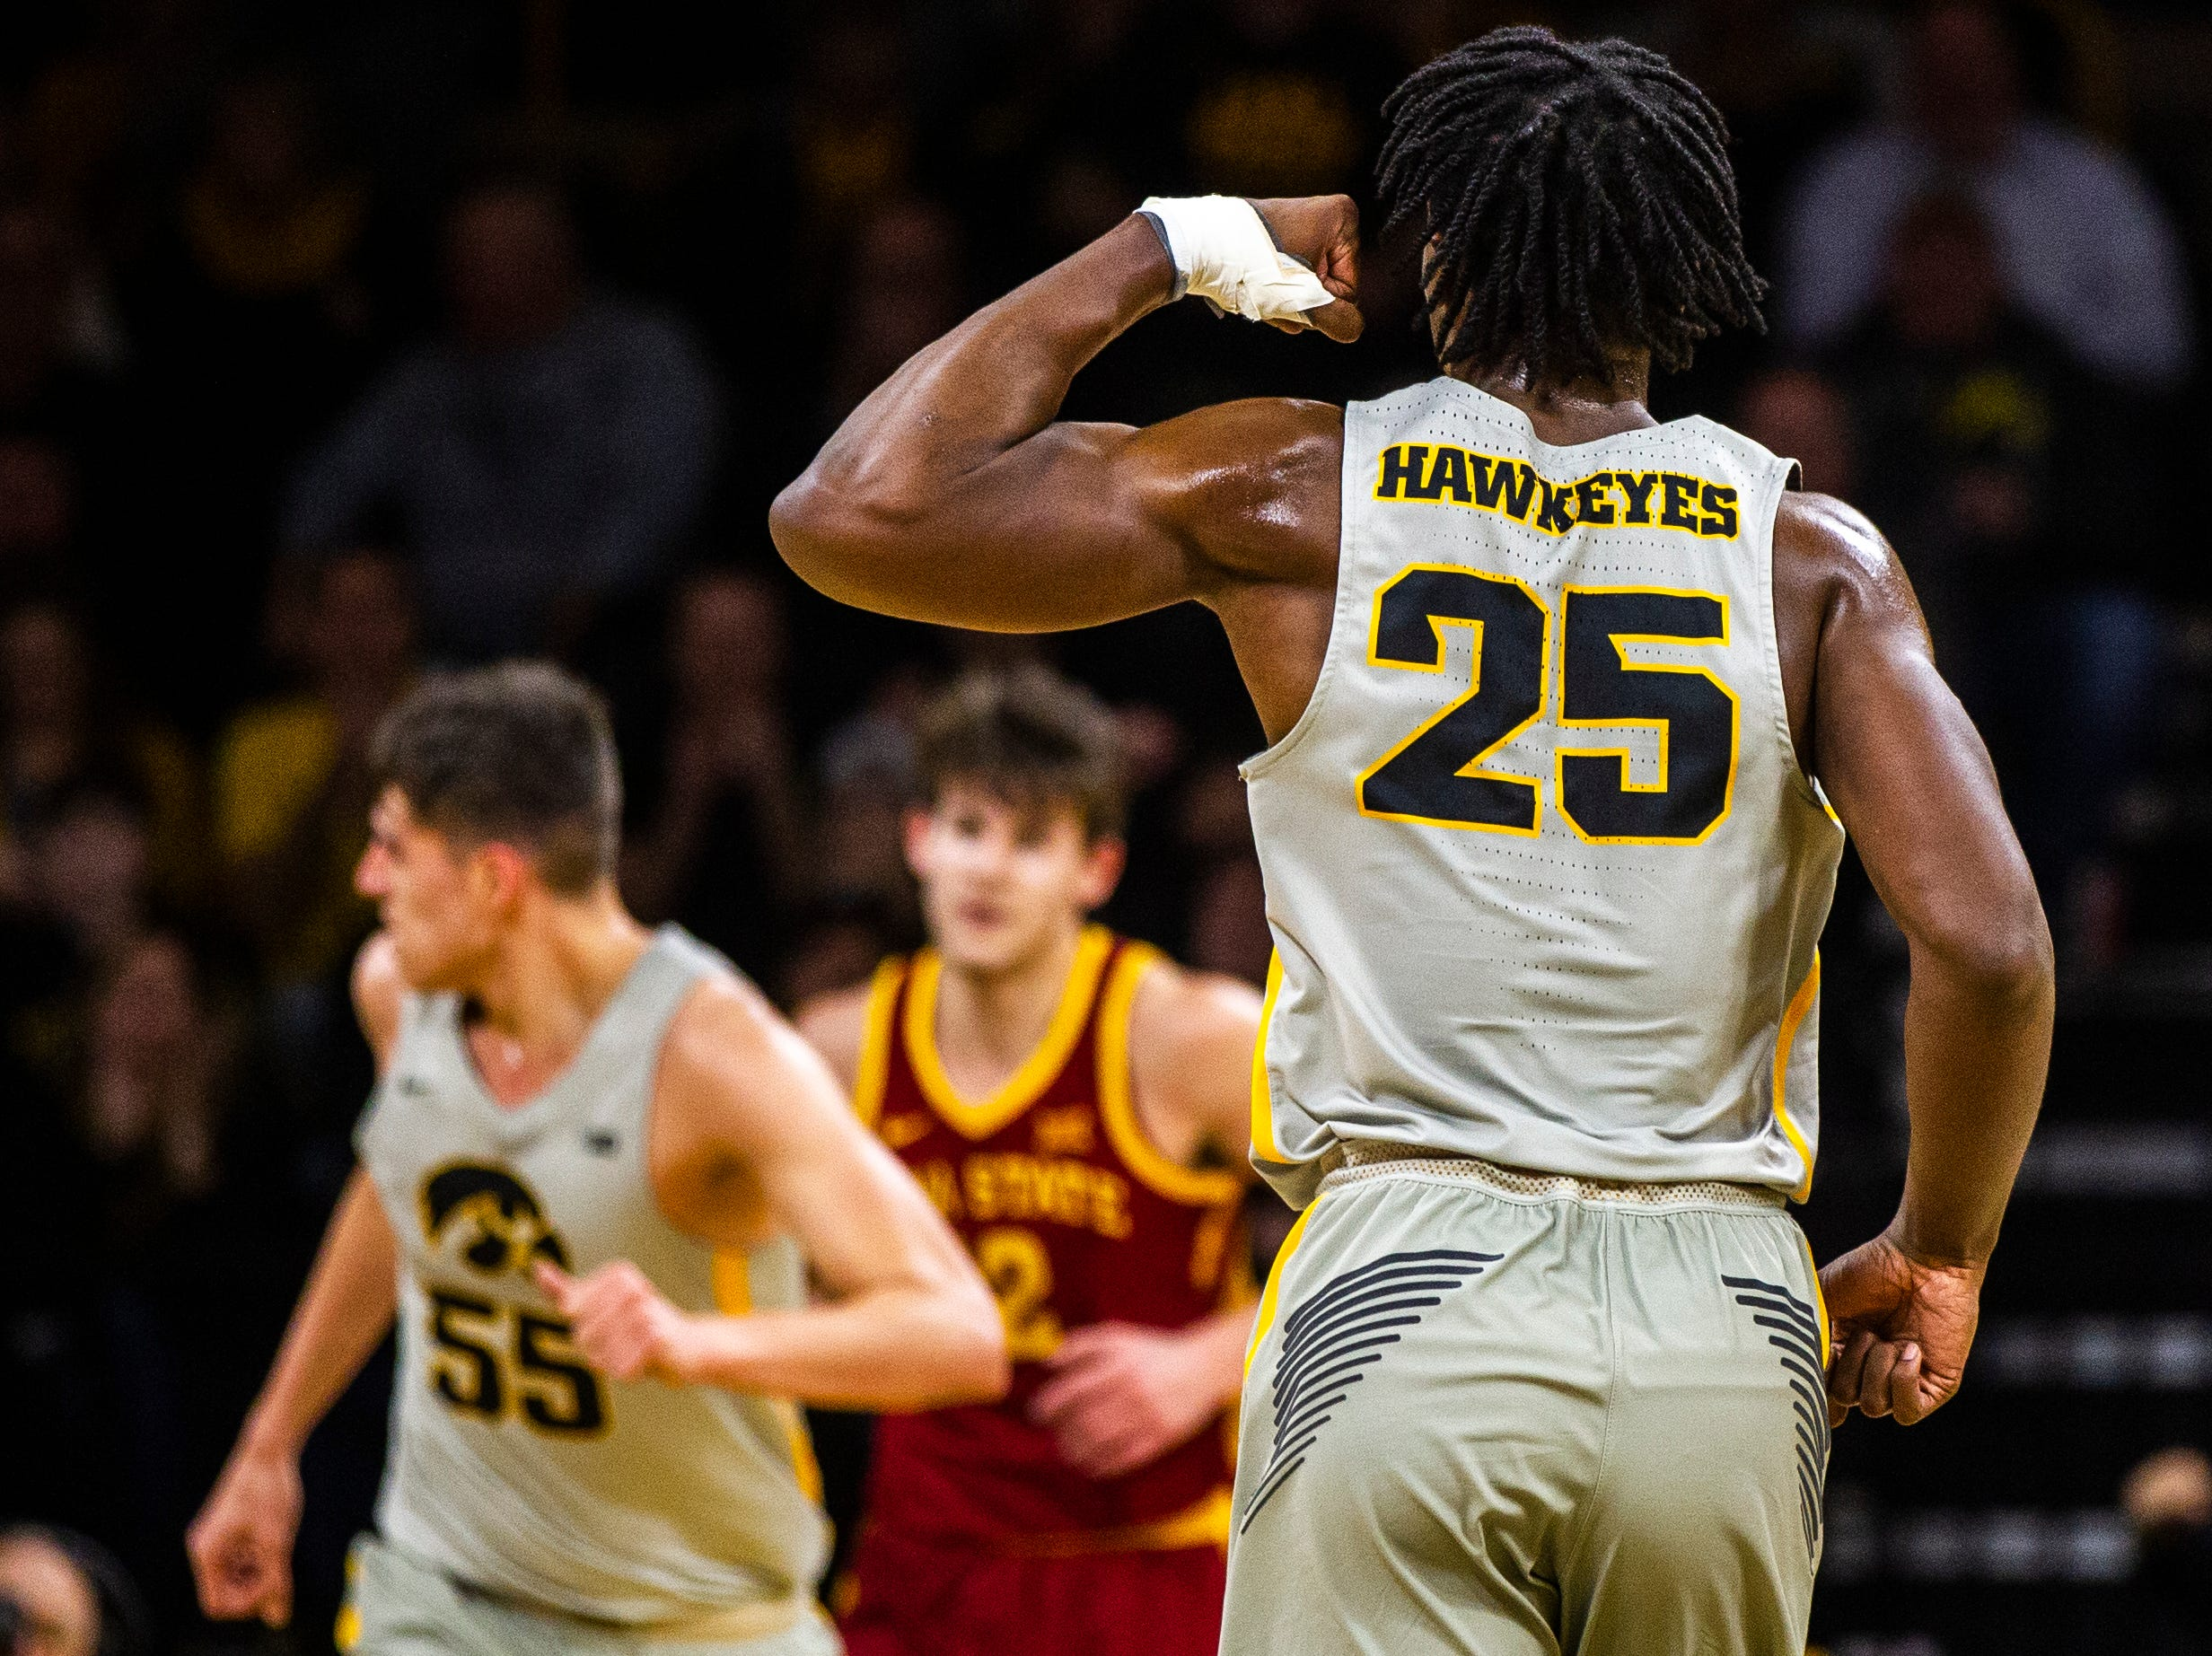 Cy-Hawk basketball: What we learned from No. 19 Iowa's bounce-back win over Iowa State